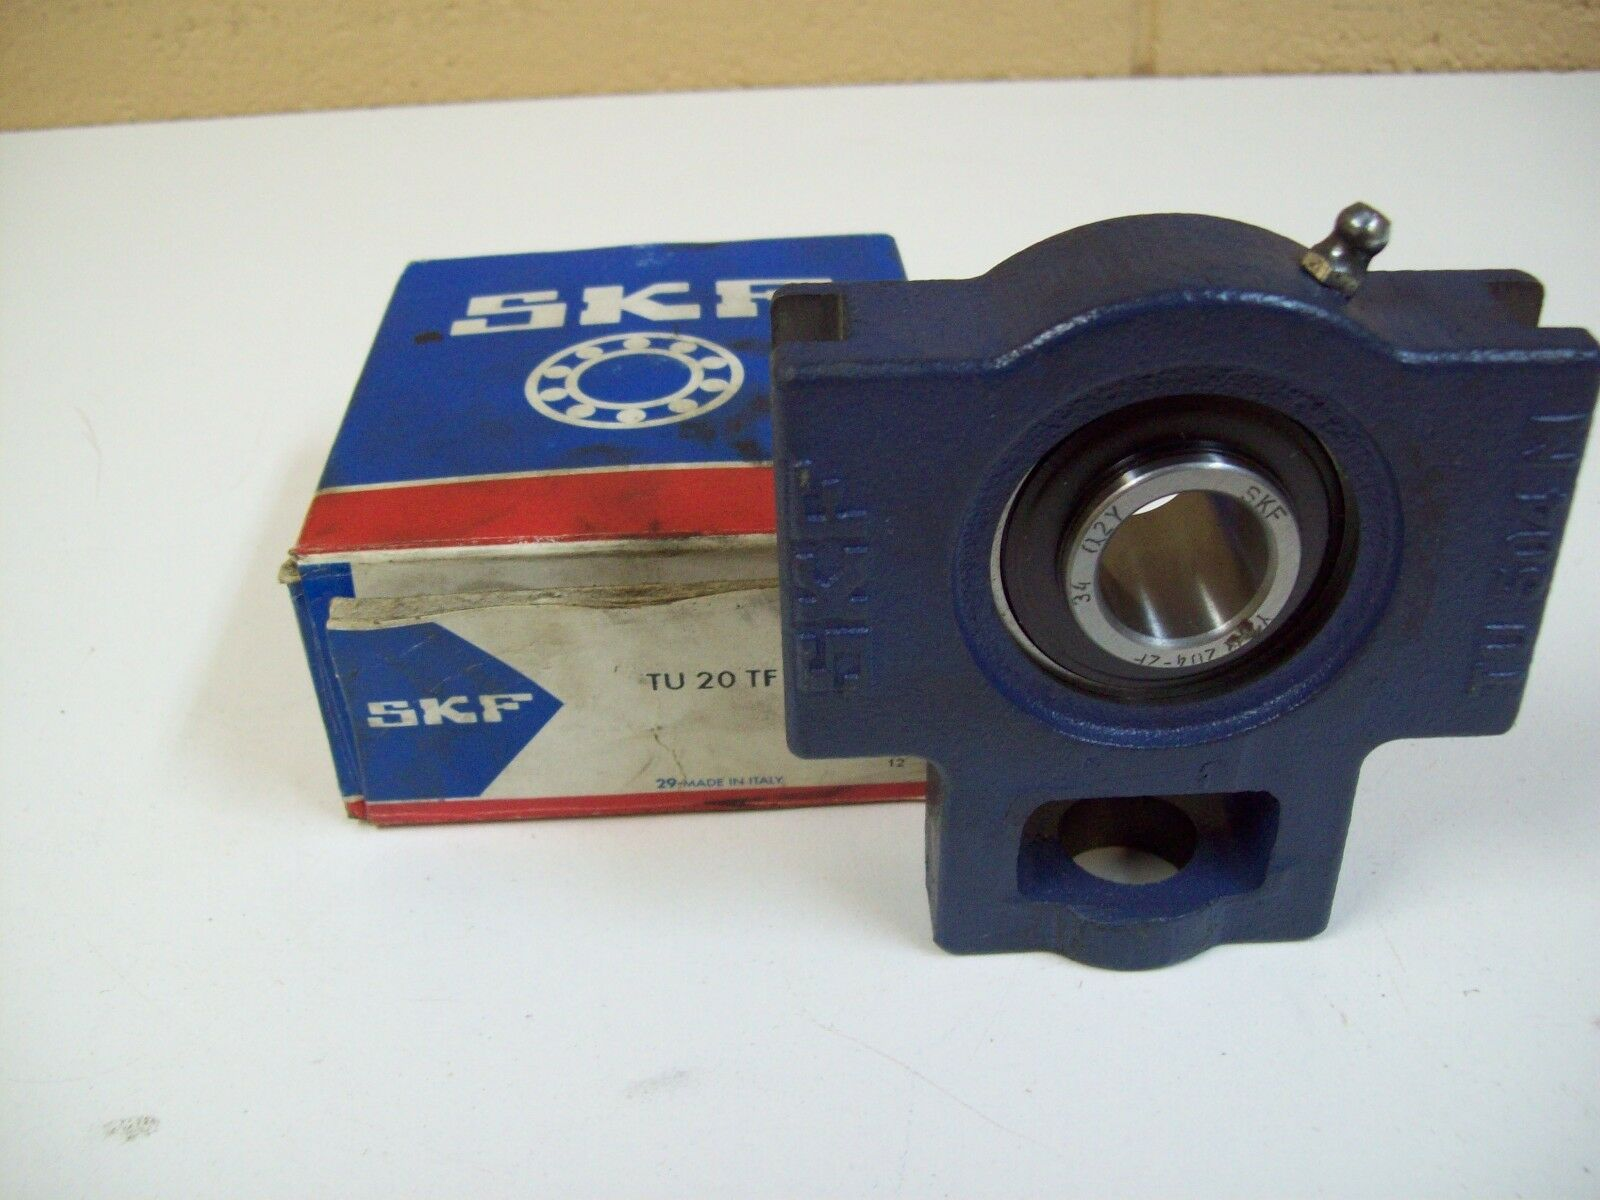 SKF TU 20 TF HOUSING BEARING ASSY - NIB - FREE SHIPPING